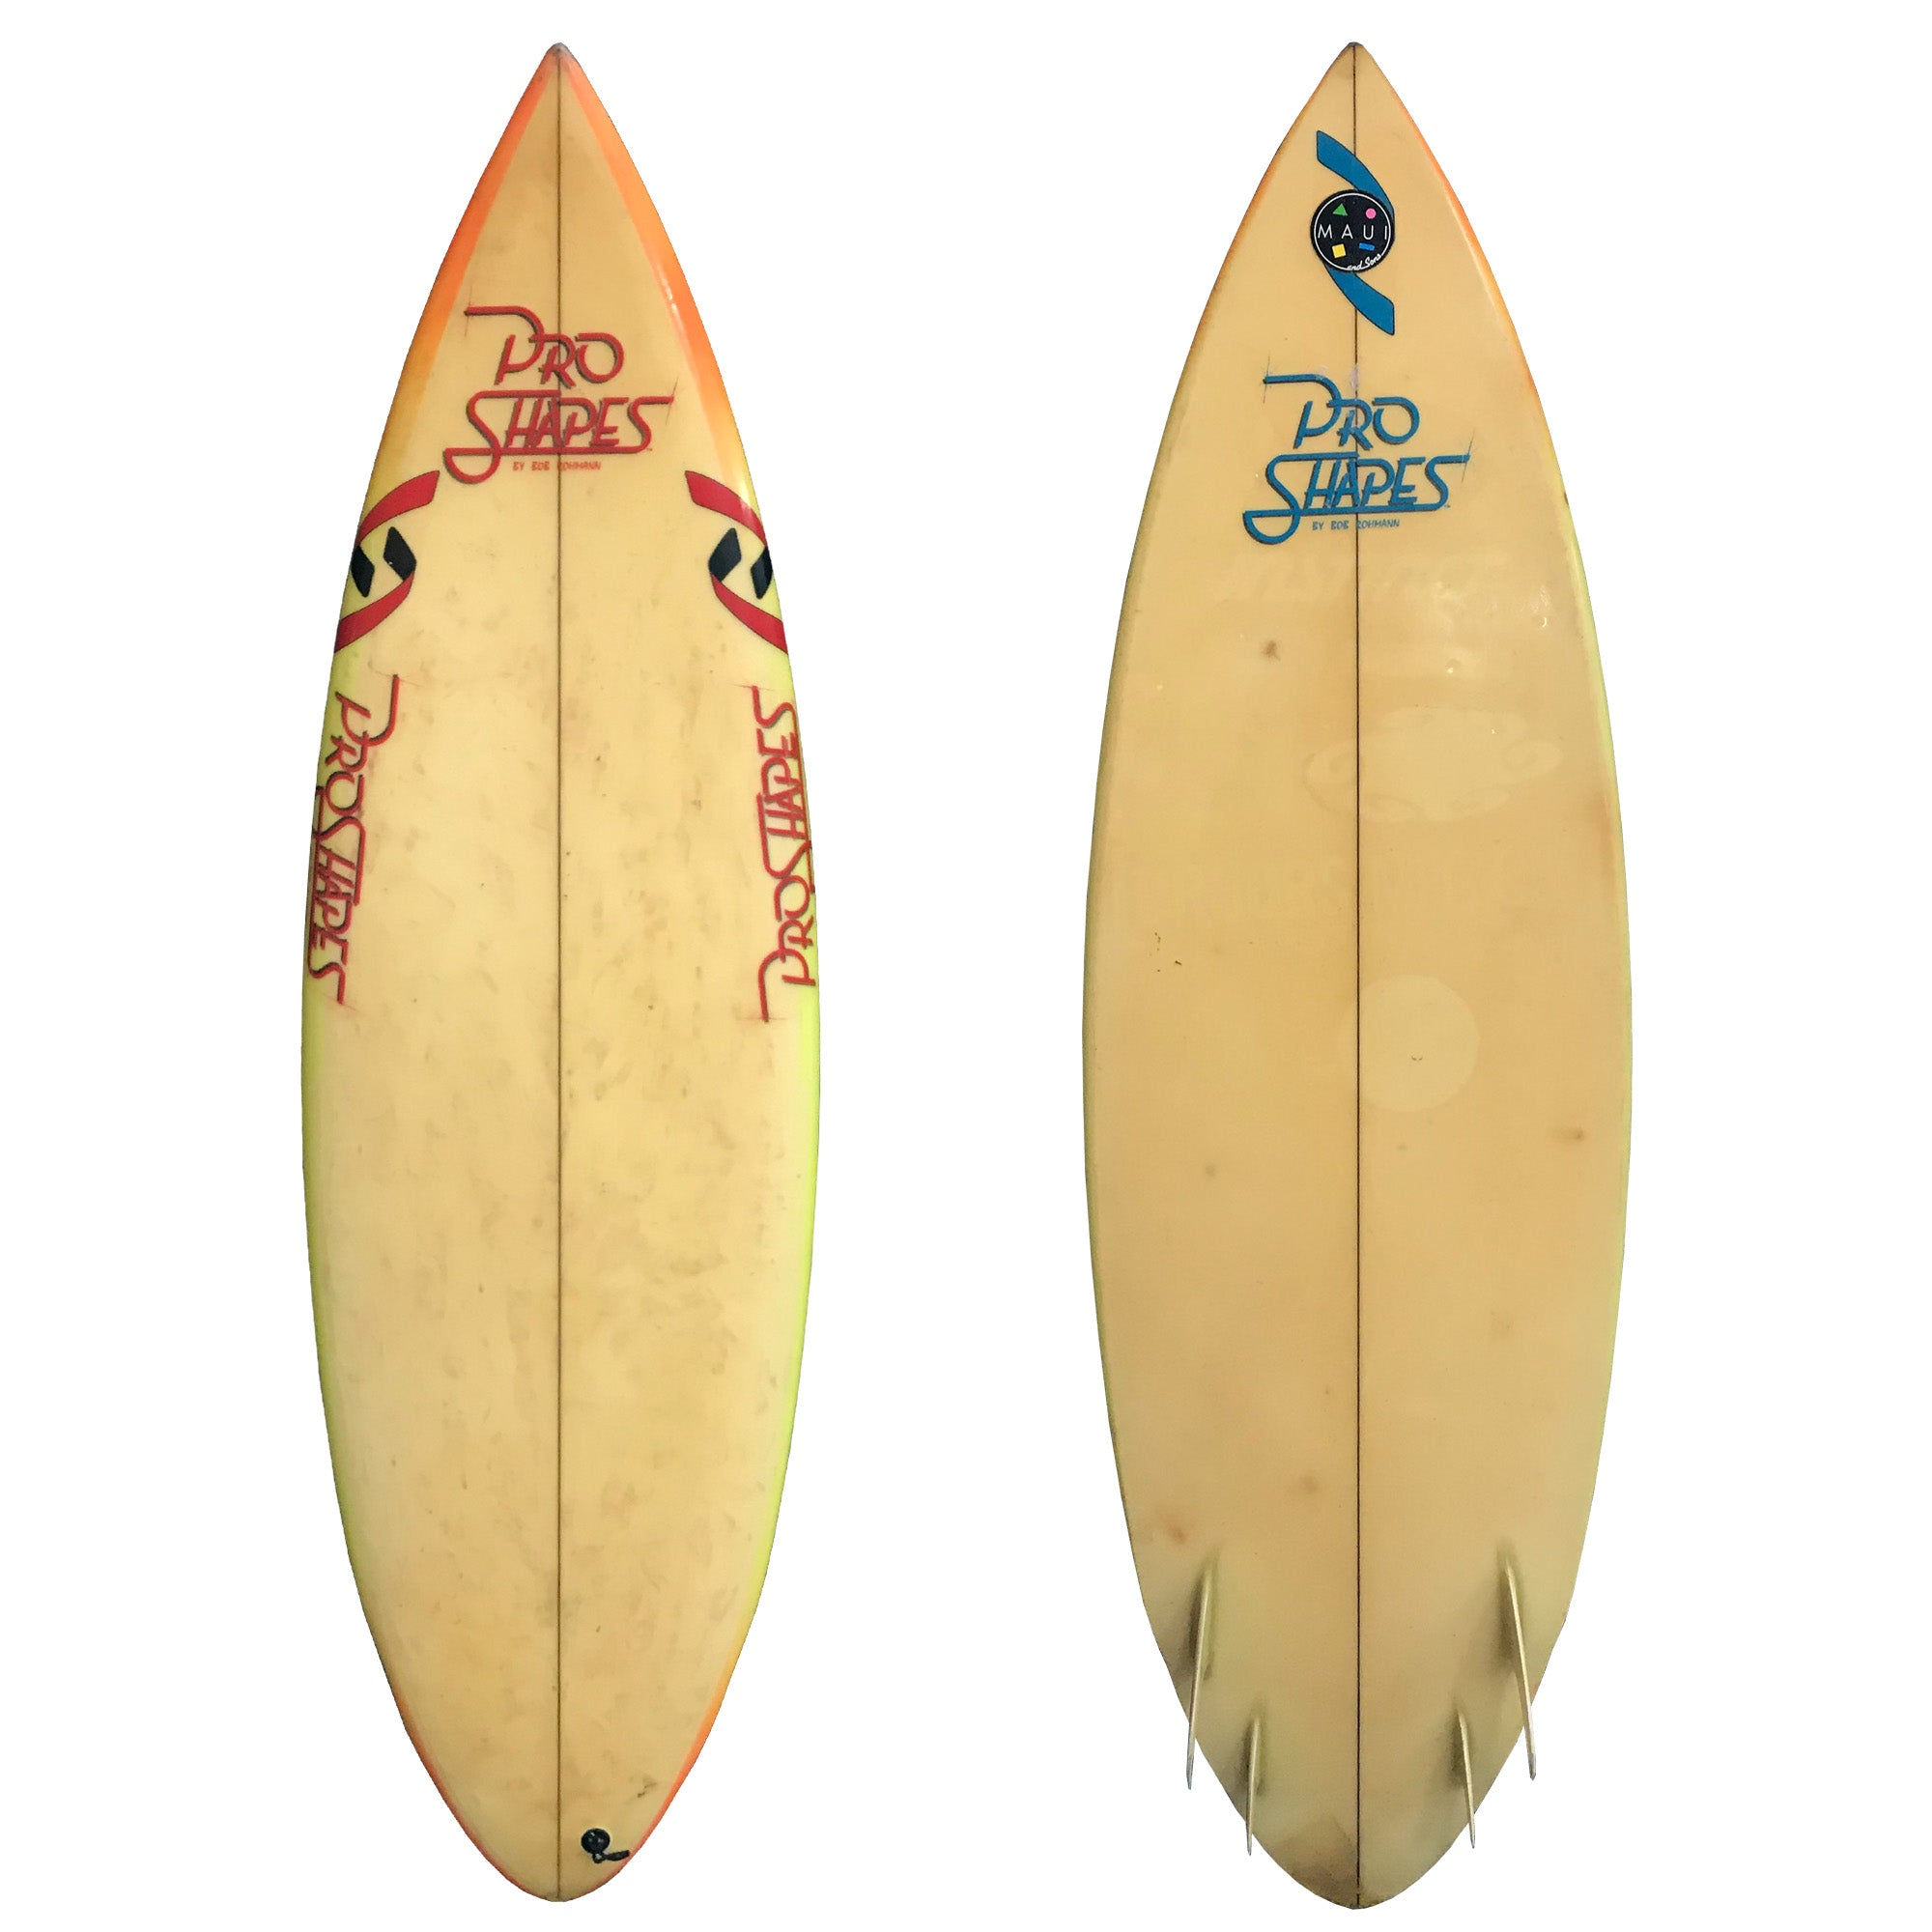 Handshaped by Bob Rohmann Pro Shapes Collector's Surfboard